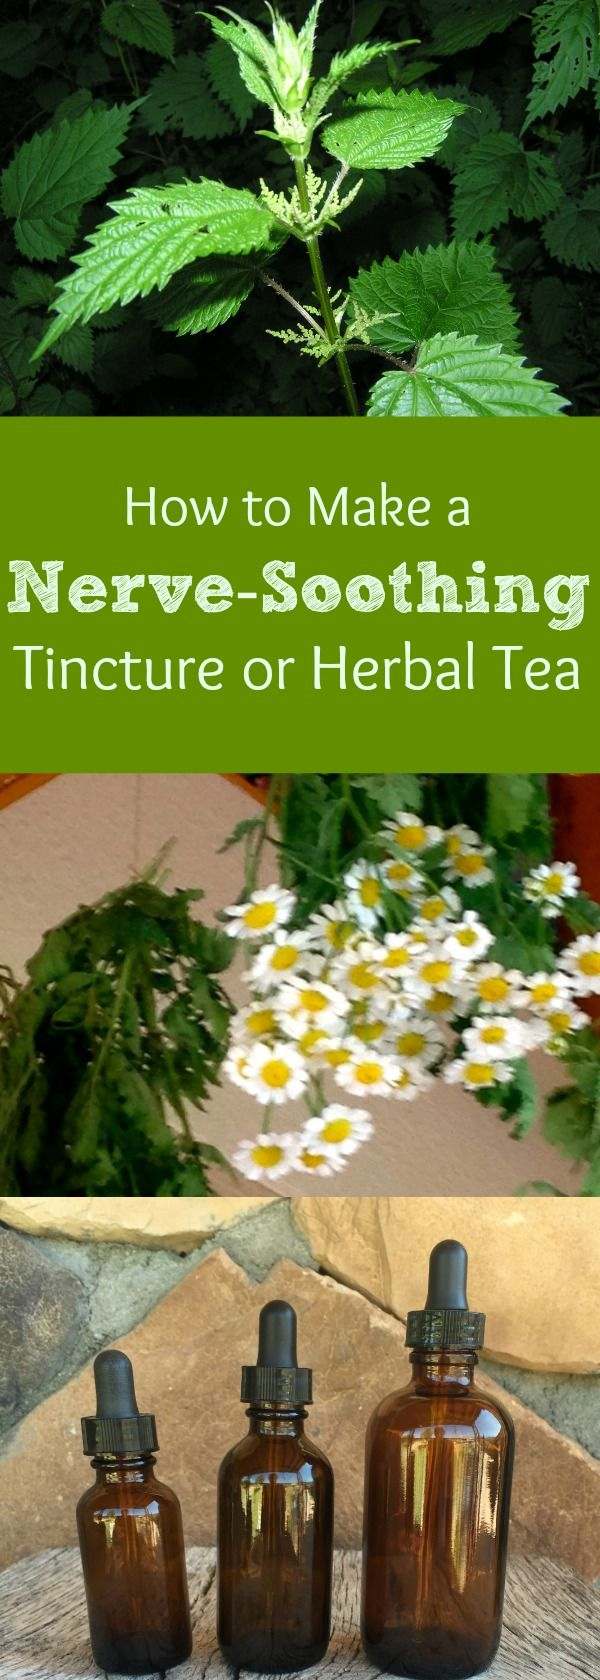 "Ever just had ""one of those days?""  It seems they happen pretty frequently during this increasingly busy time of year.  Here is an easy and effective tincture you can make to soothe your nerves!  There are only three herbs in it, and it tastes pretty good, too.  In addition, if you happen to be a sufferer of migraine headaches, there is evidence that the herbs in this tincture is thought to help out with those! By the way, this herbal combination also makes an easy delicious tea, if you…"